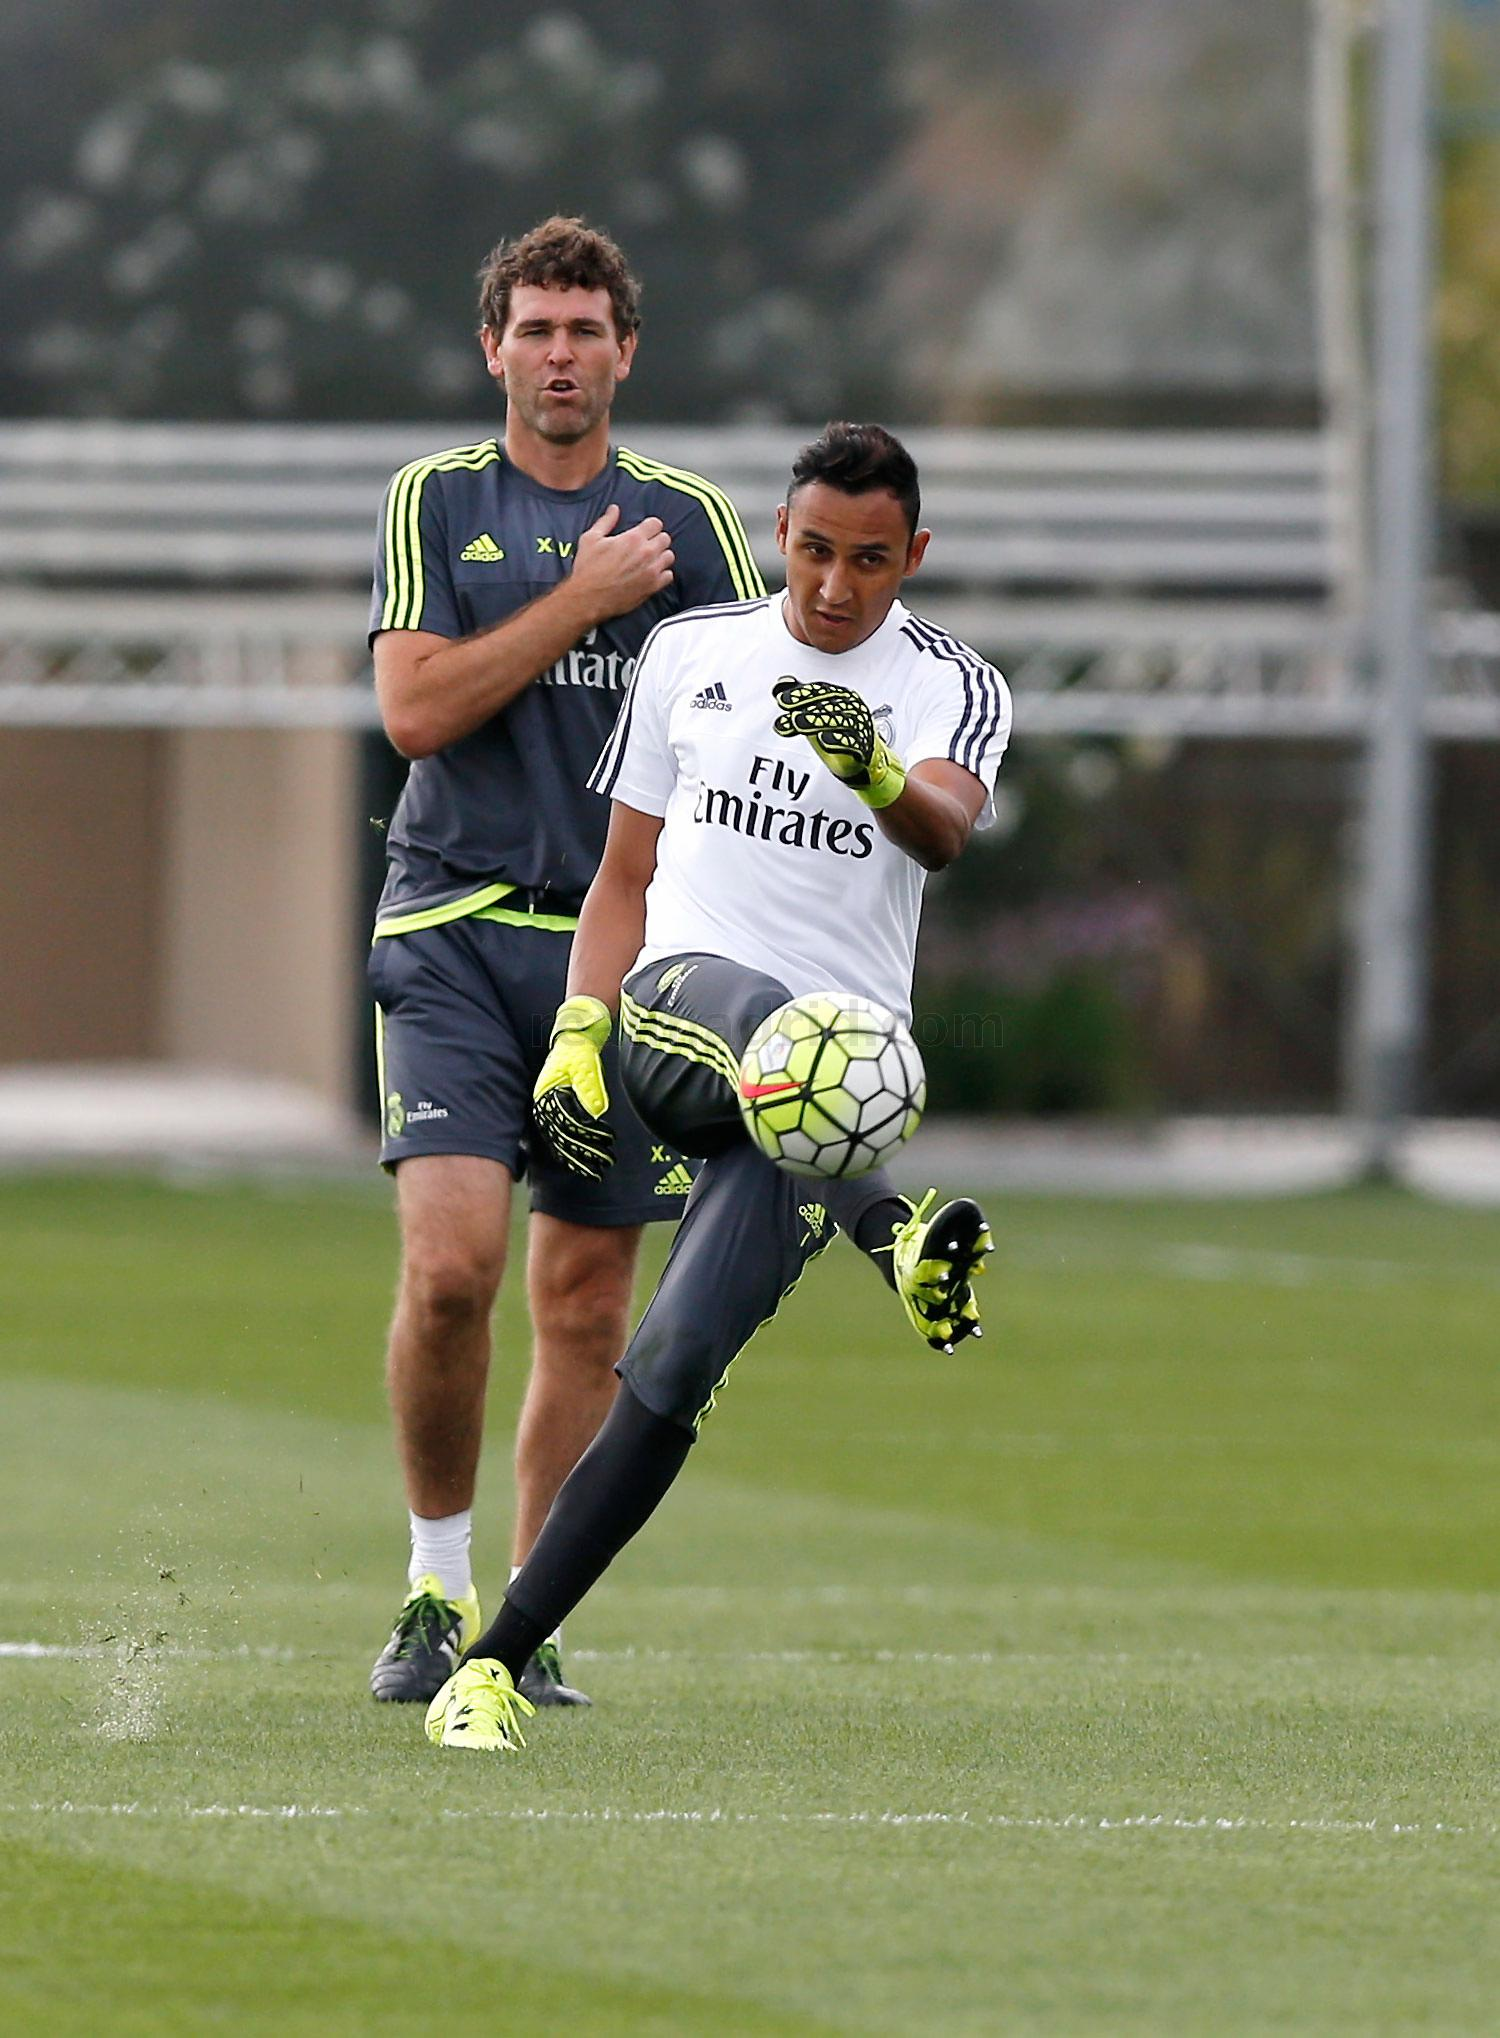 Real Madrid - Entrenamiento del Real Madrid - 09-09-2015